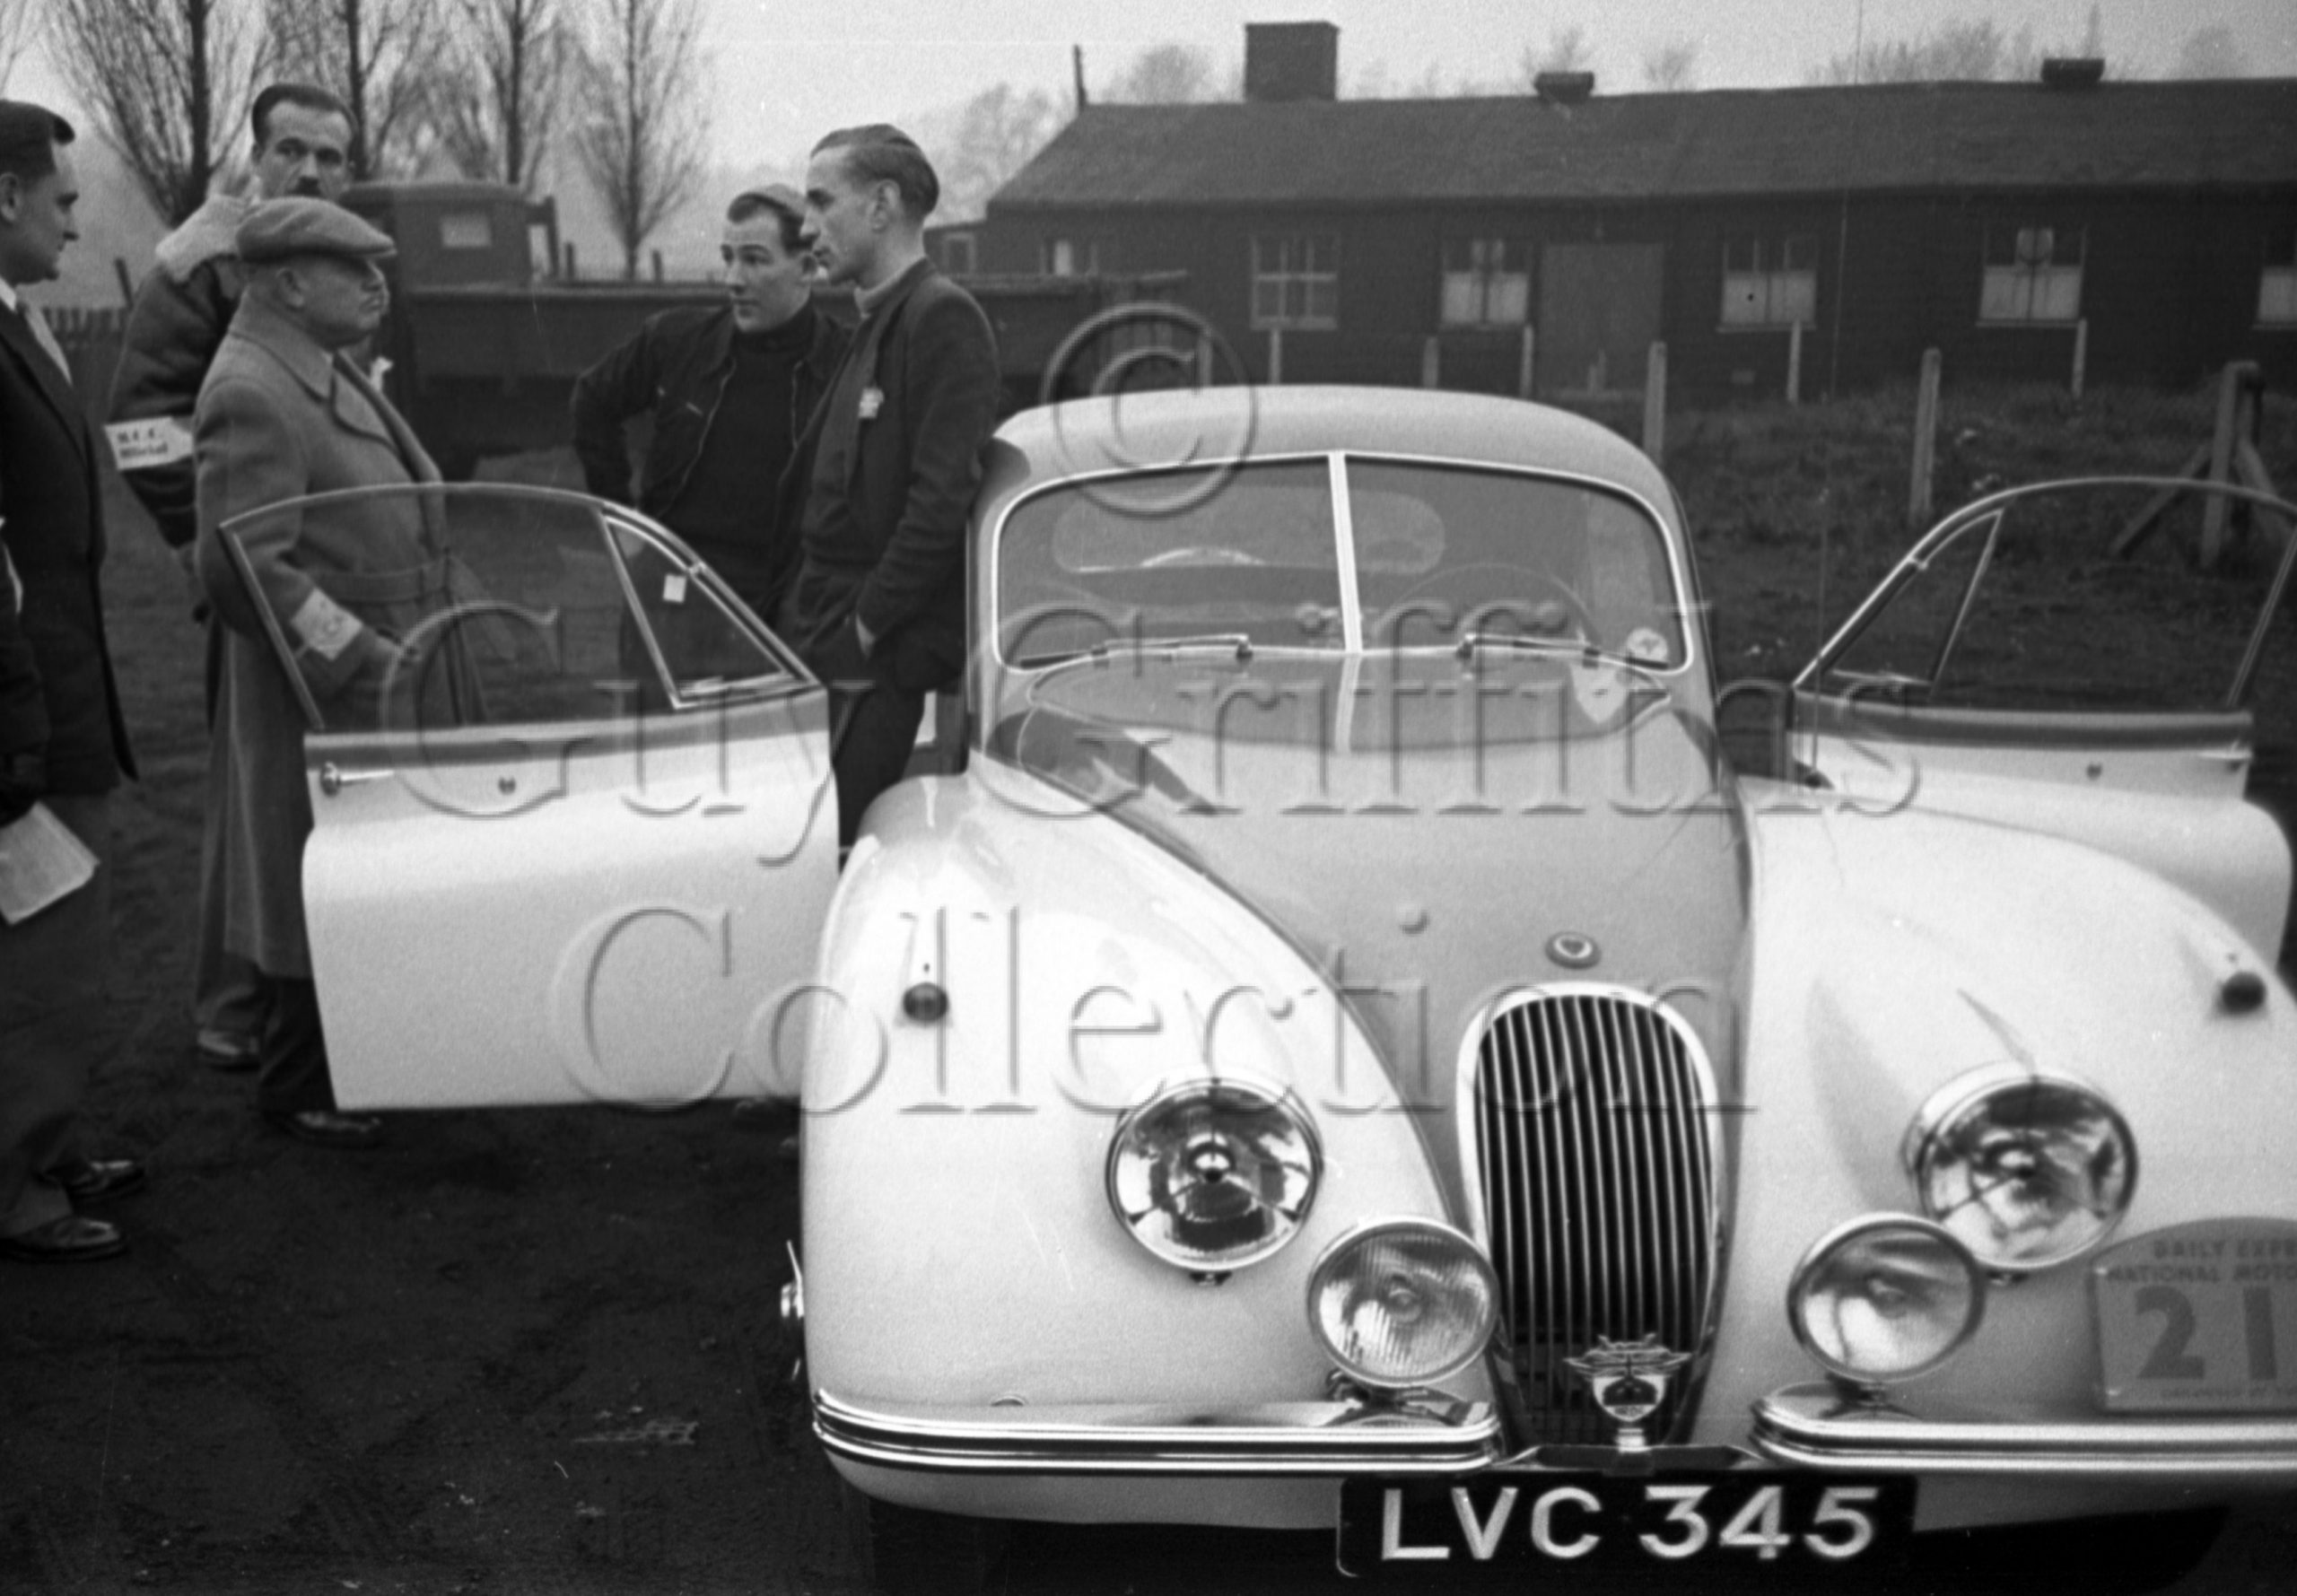 64-263–S-Moss–J-Cooper–Jaguar-XK-120-LVC-345–Daily-Express-Rally–12-11-1952.jpg - Guy Griffiths Collection